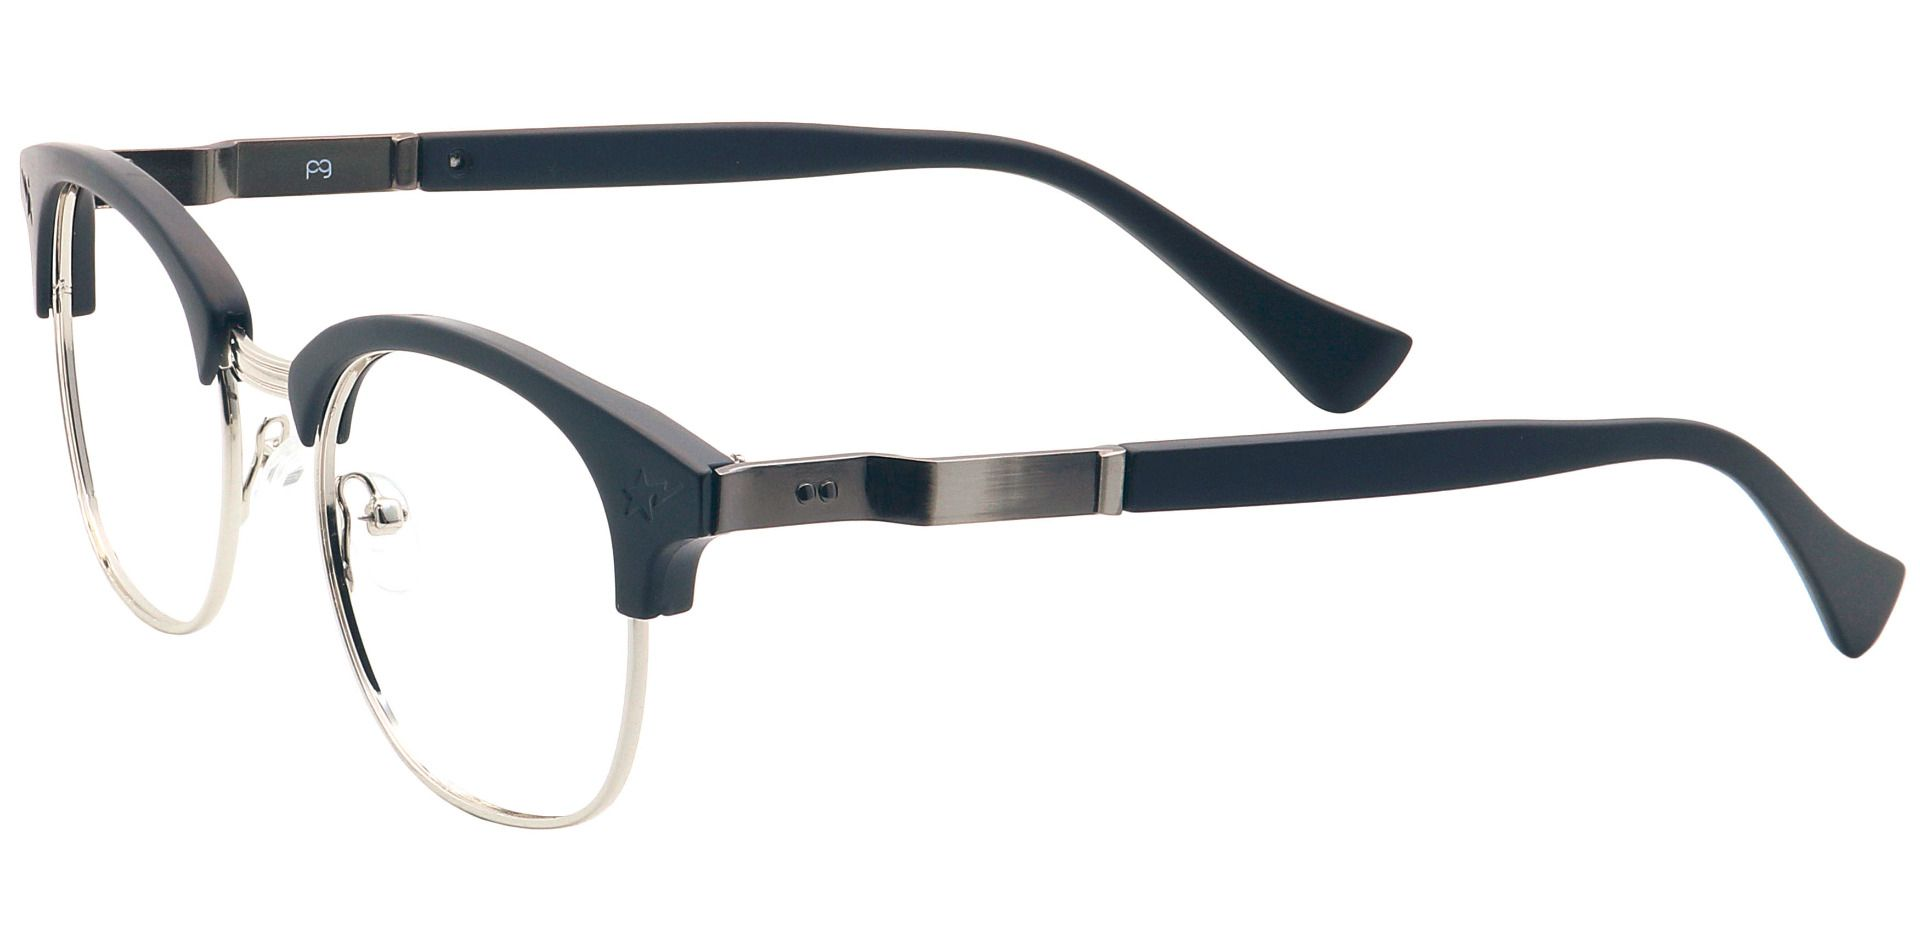 Neptune Browline Non-Rx Glasses - Black